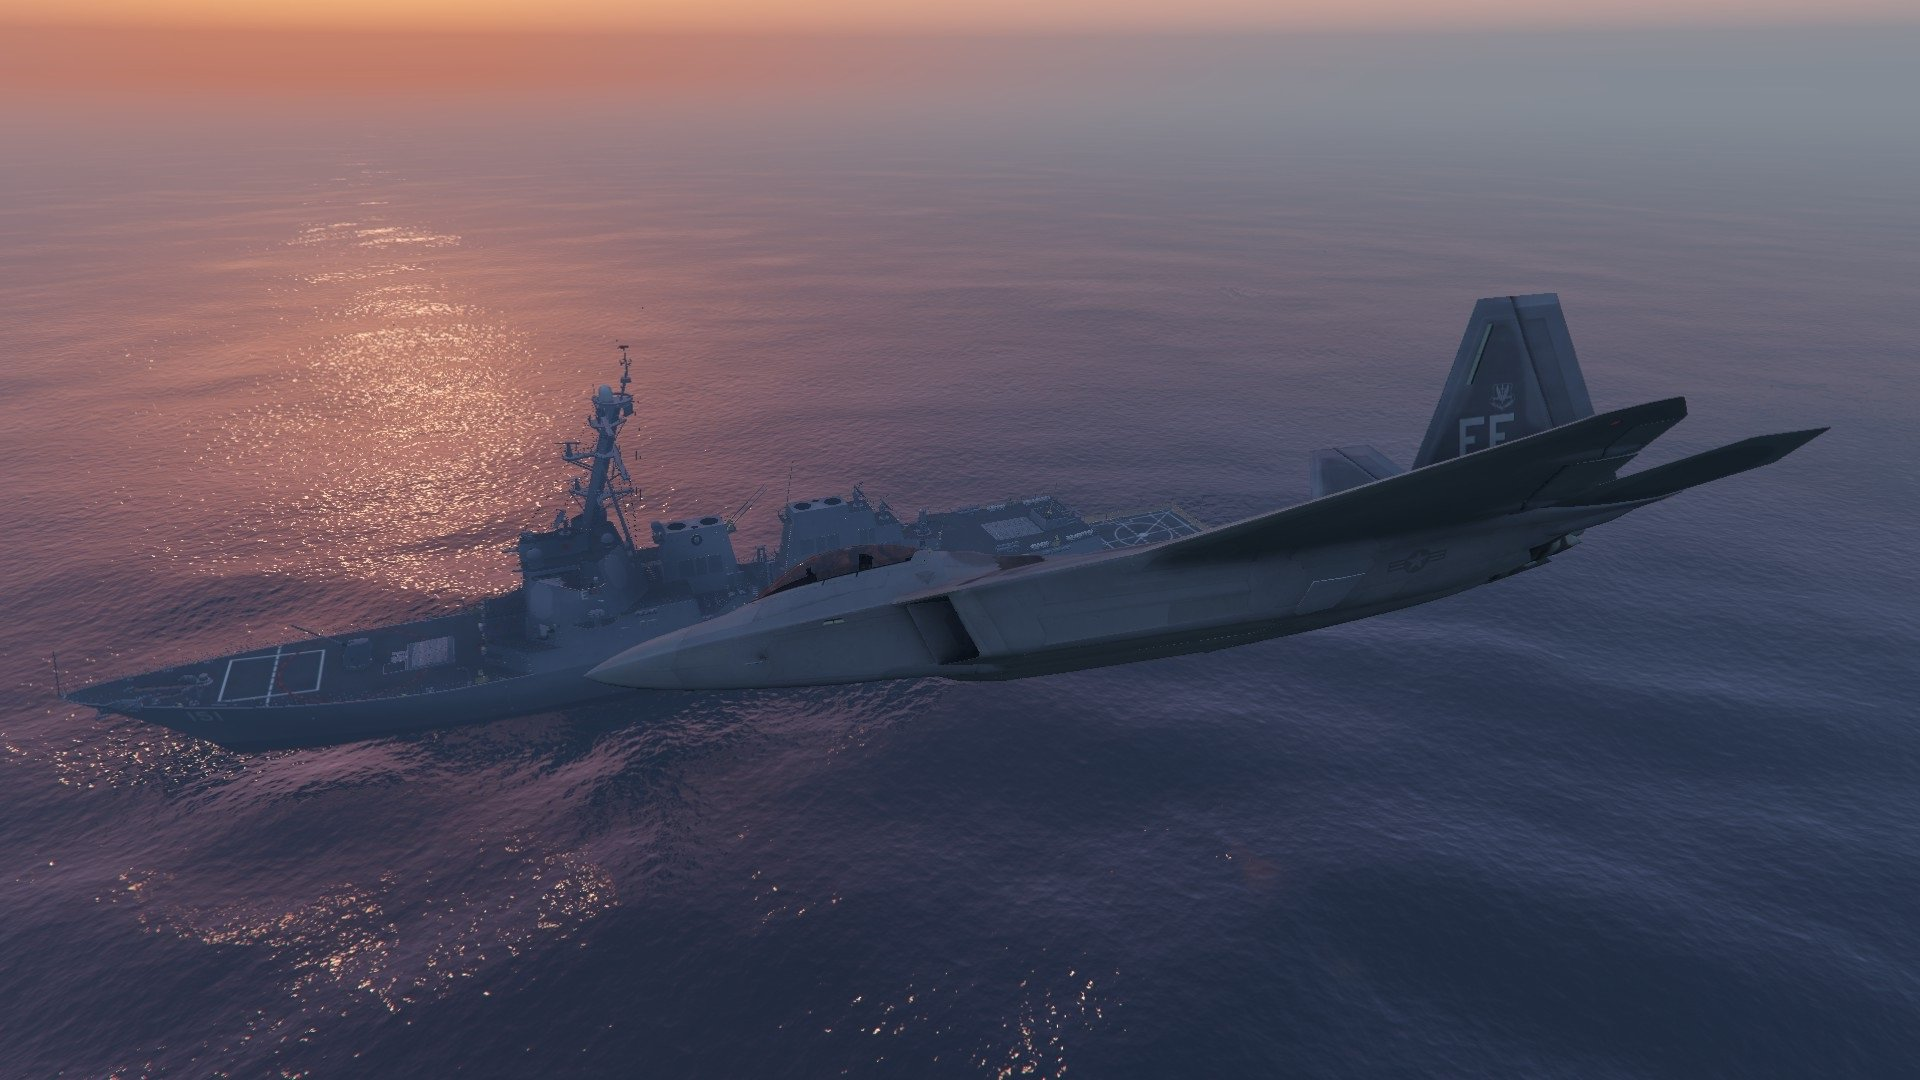 gta 4 cheats for helicopter with F 22 Raptor on 73433 Mi 28 Night Hunter also Mil Mi 26 Halo Largest Mass Produced Heli Add On also Cell Phone Cheats On Game Gta 5 additionally Mclaren F1 Gtr Longtail also 70926 Police Cars Pack Els.